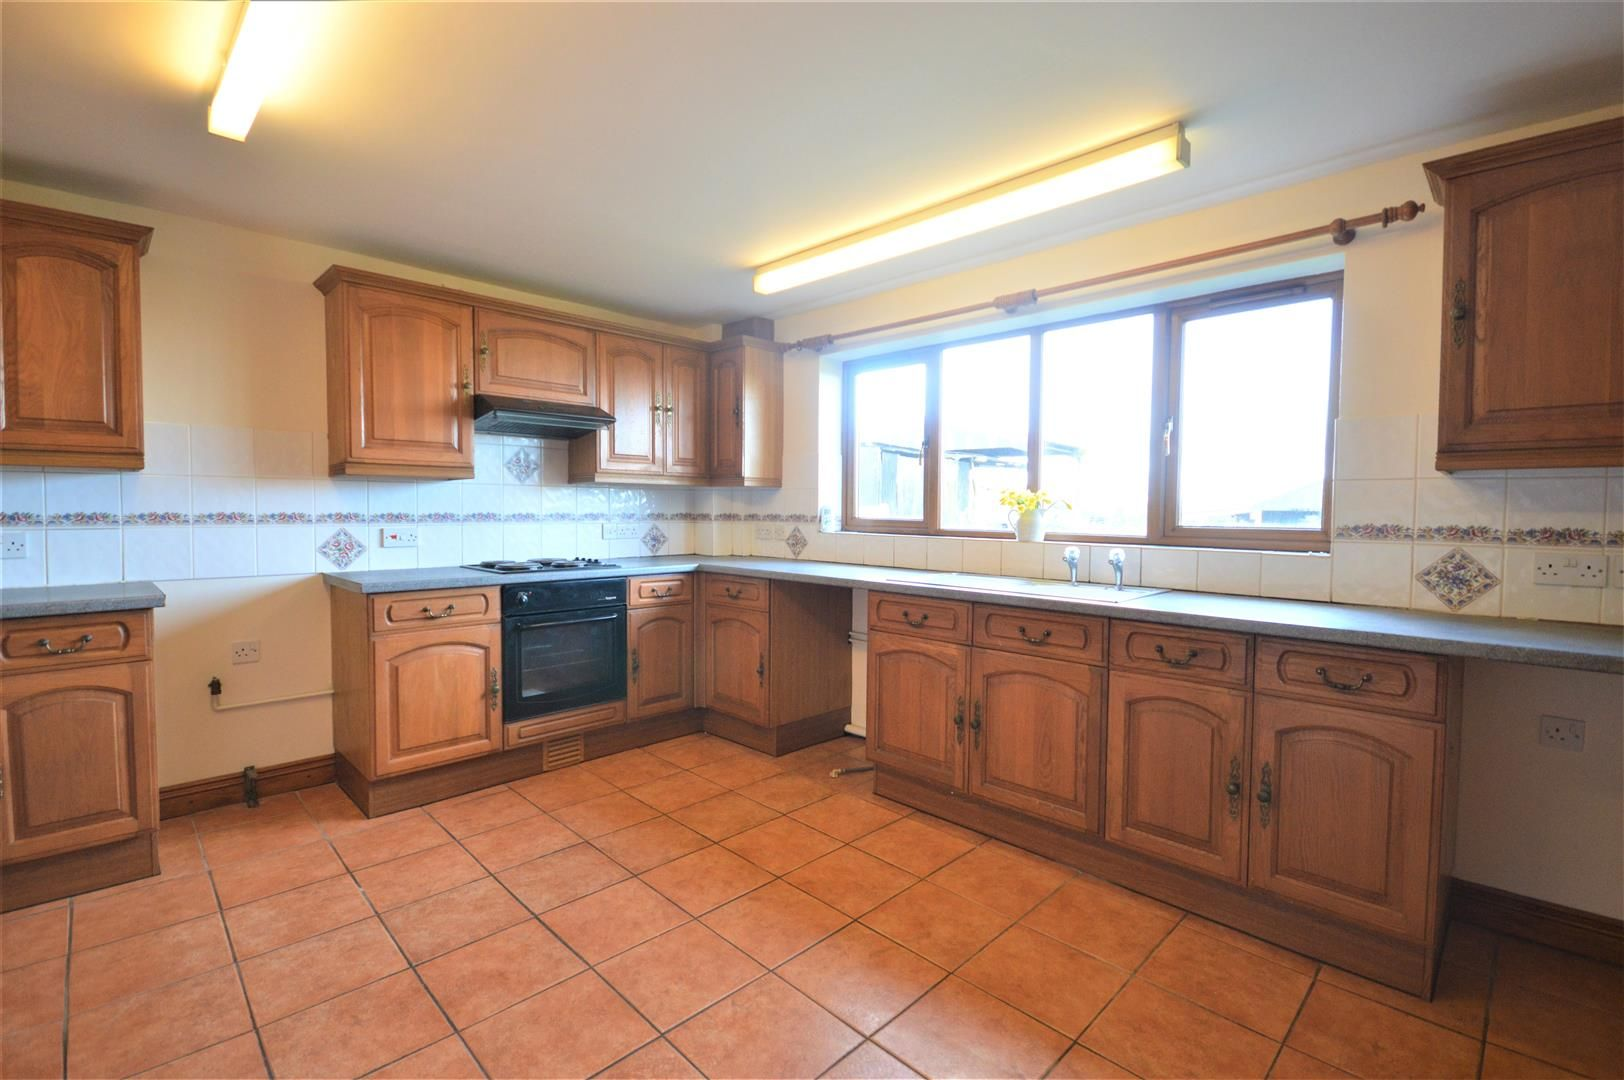 4 bed detached for sale in Leysters 3